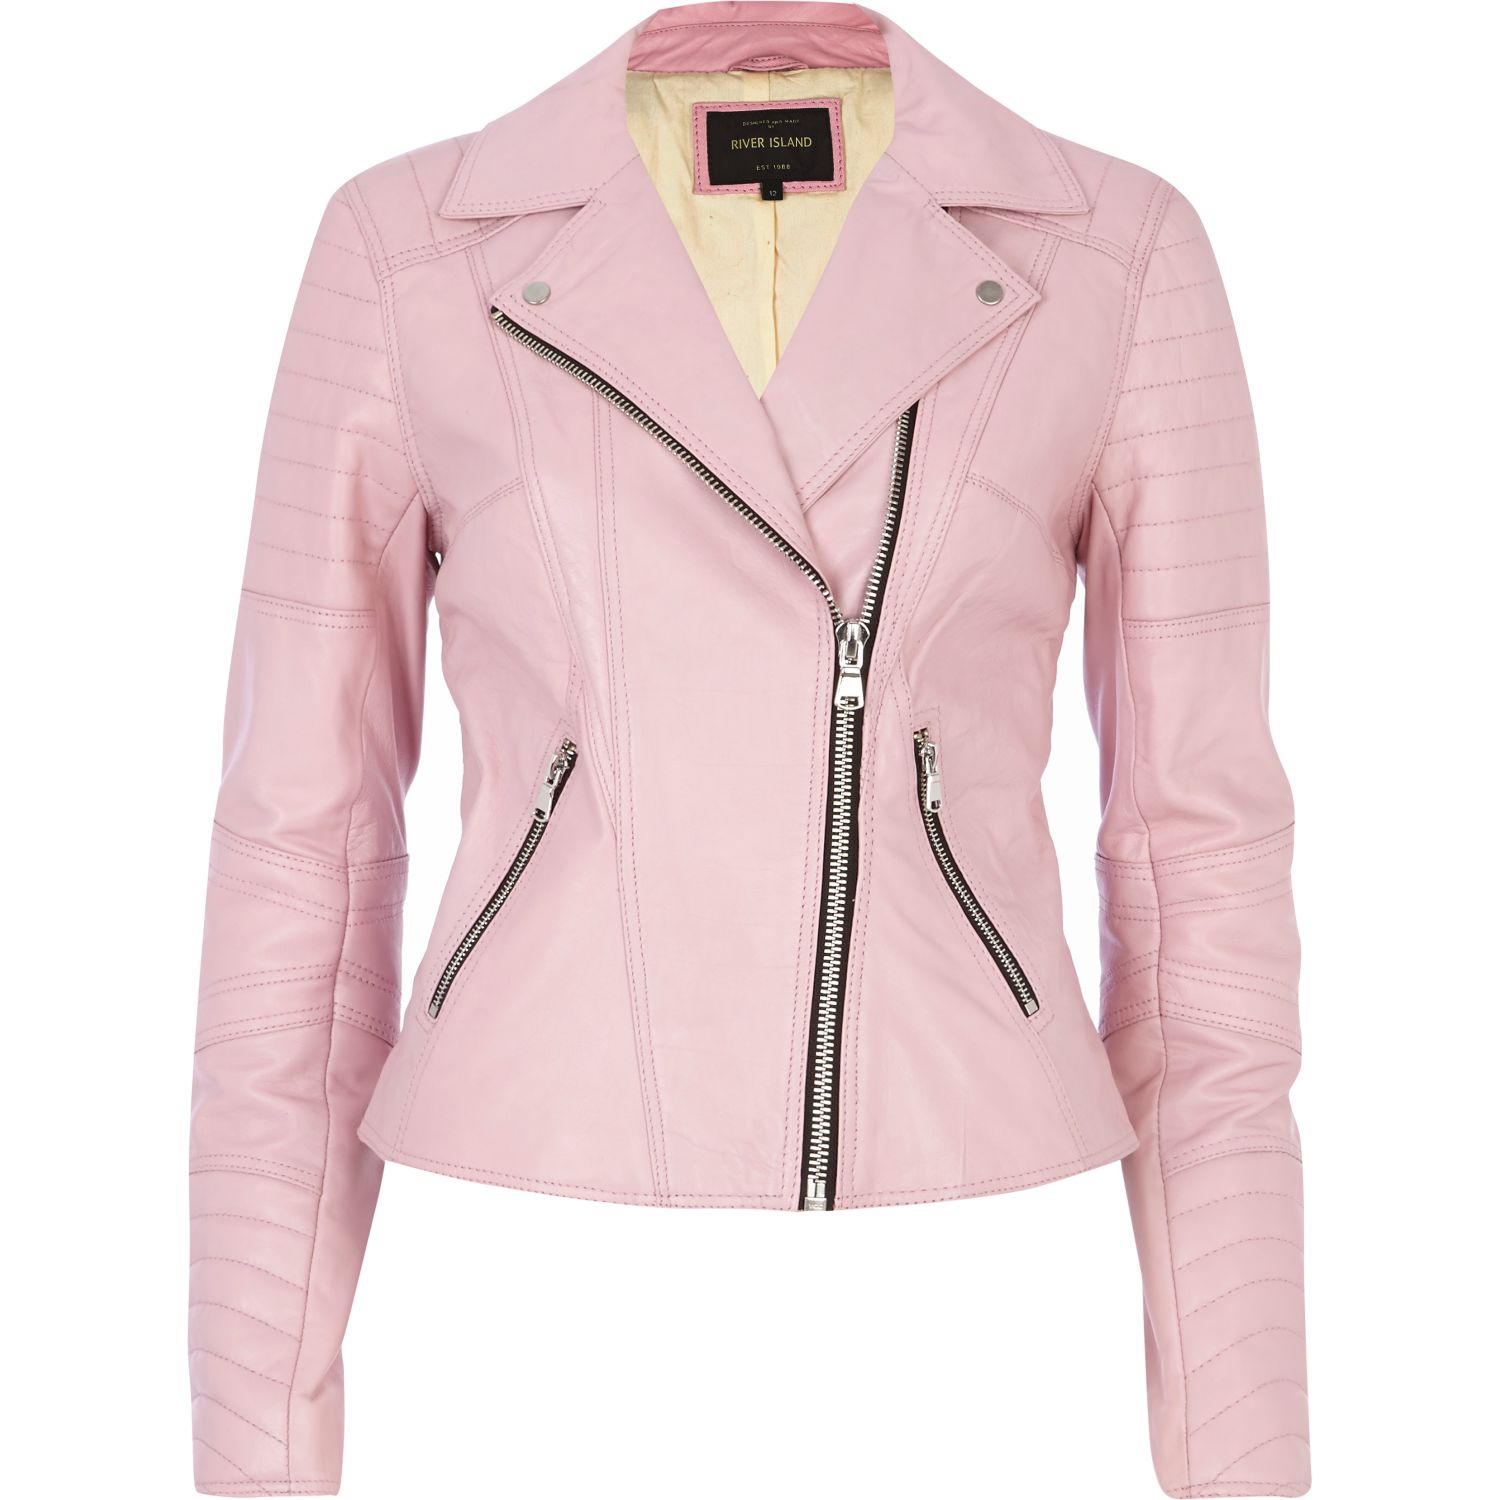 River island Pink Leather Biker Jacket in Pink | Lyst